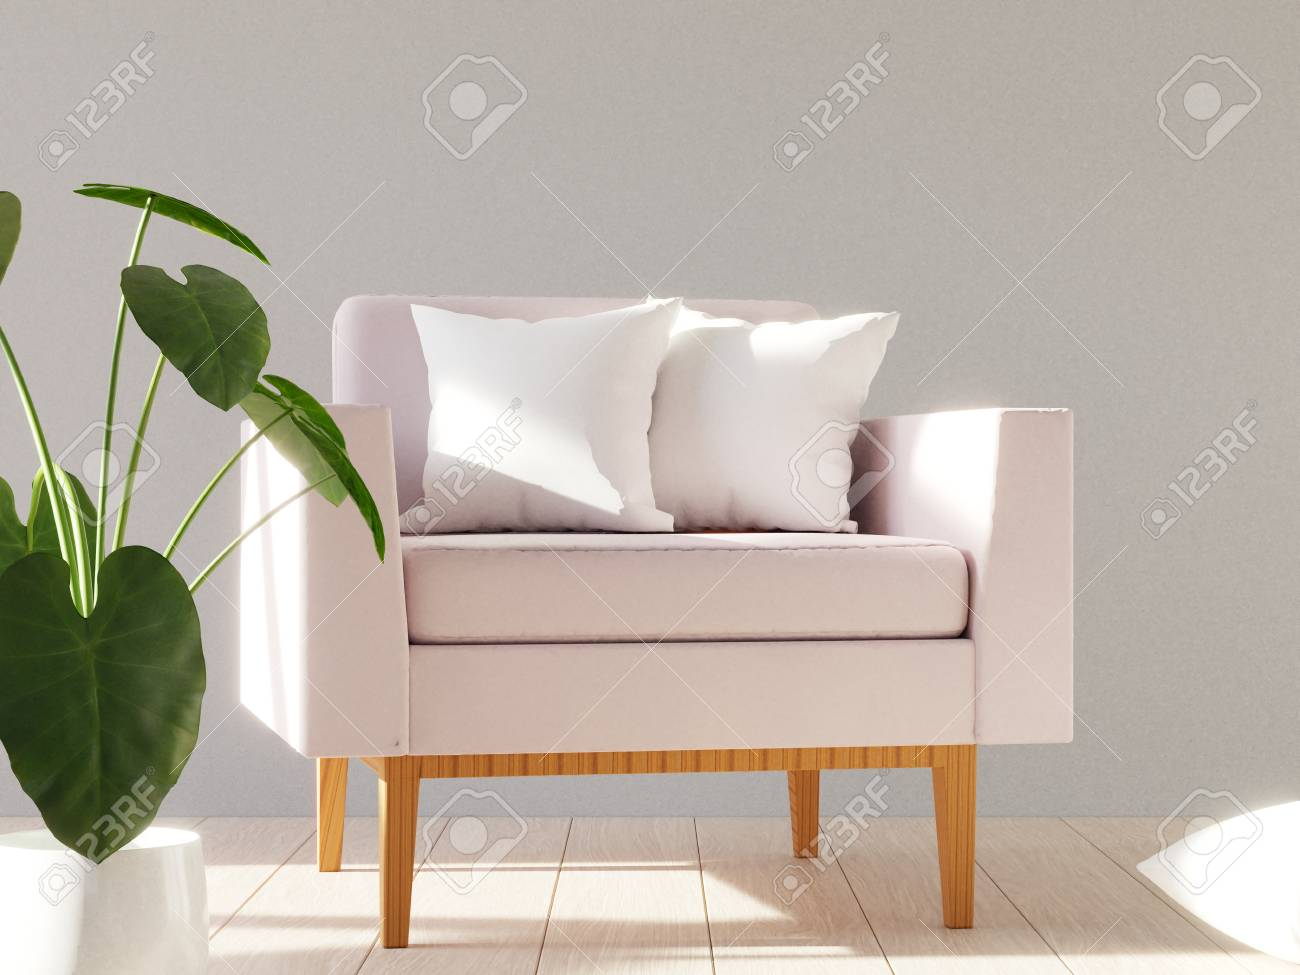 Pleasant Blank White Soft Square Pillow On A Modern Armchair Mockup For Andrewgaddart Wooden Chair Designs For Living Room Andrewgaddartcom